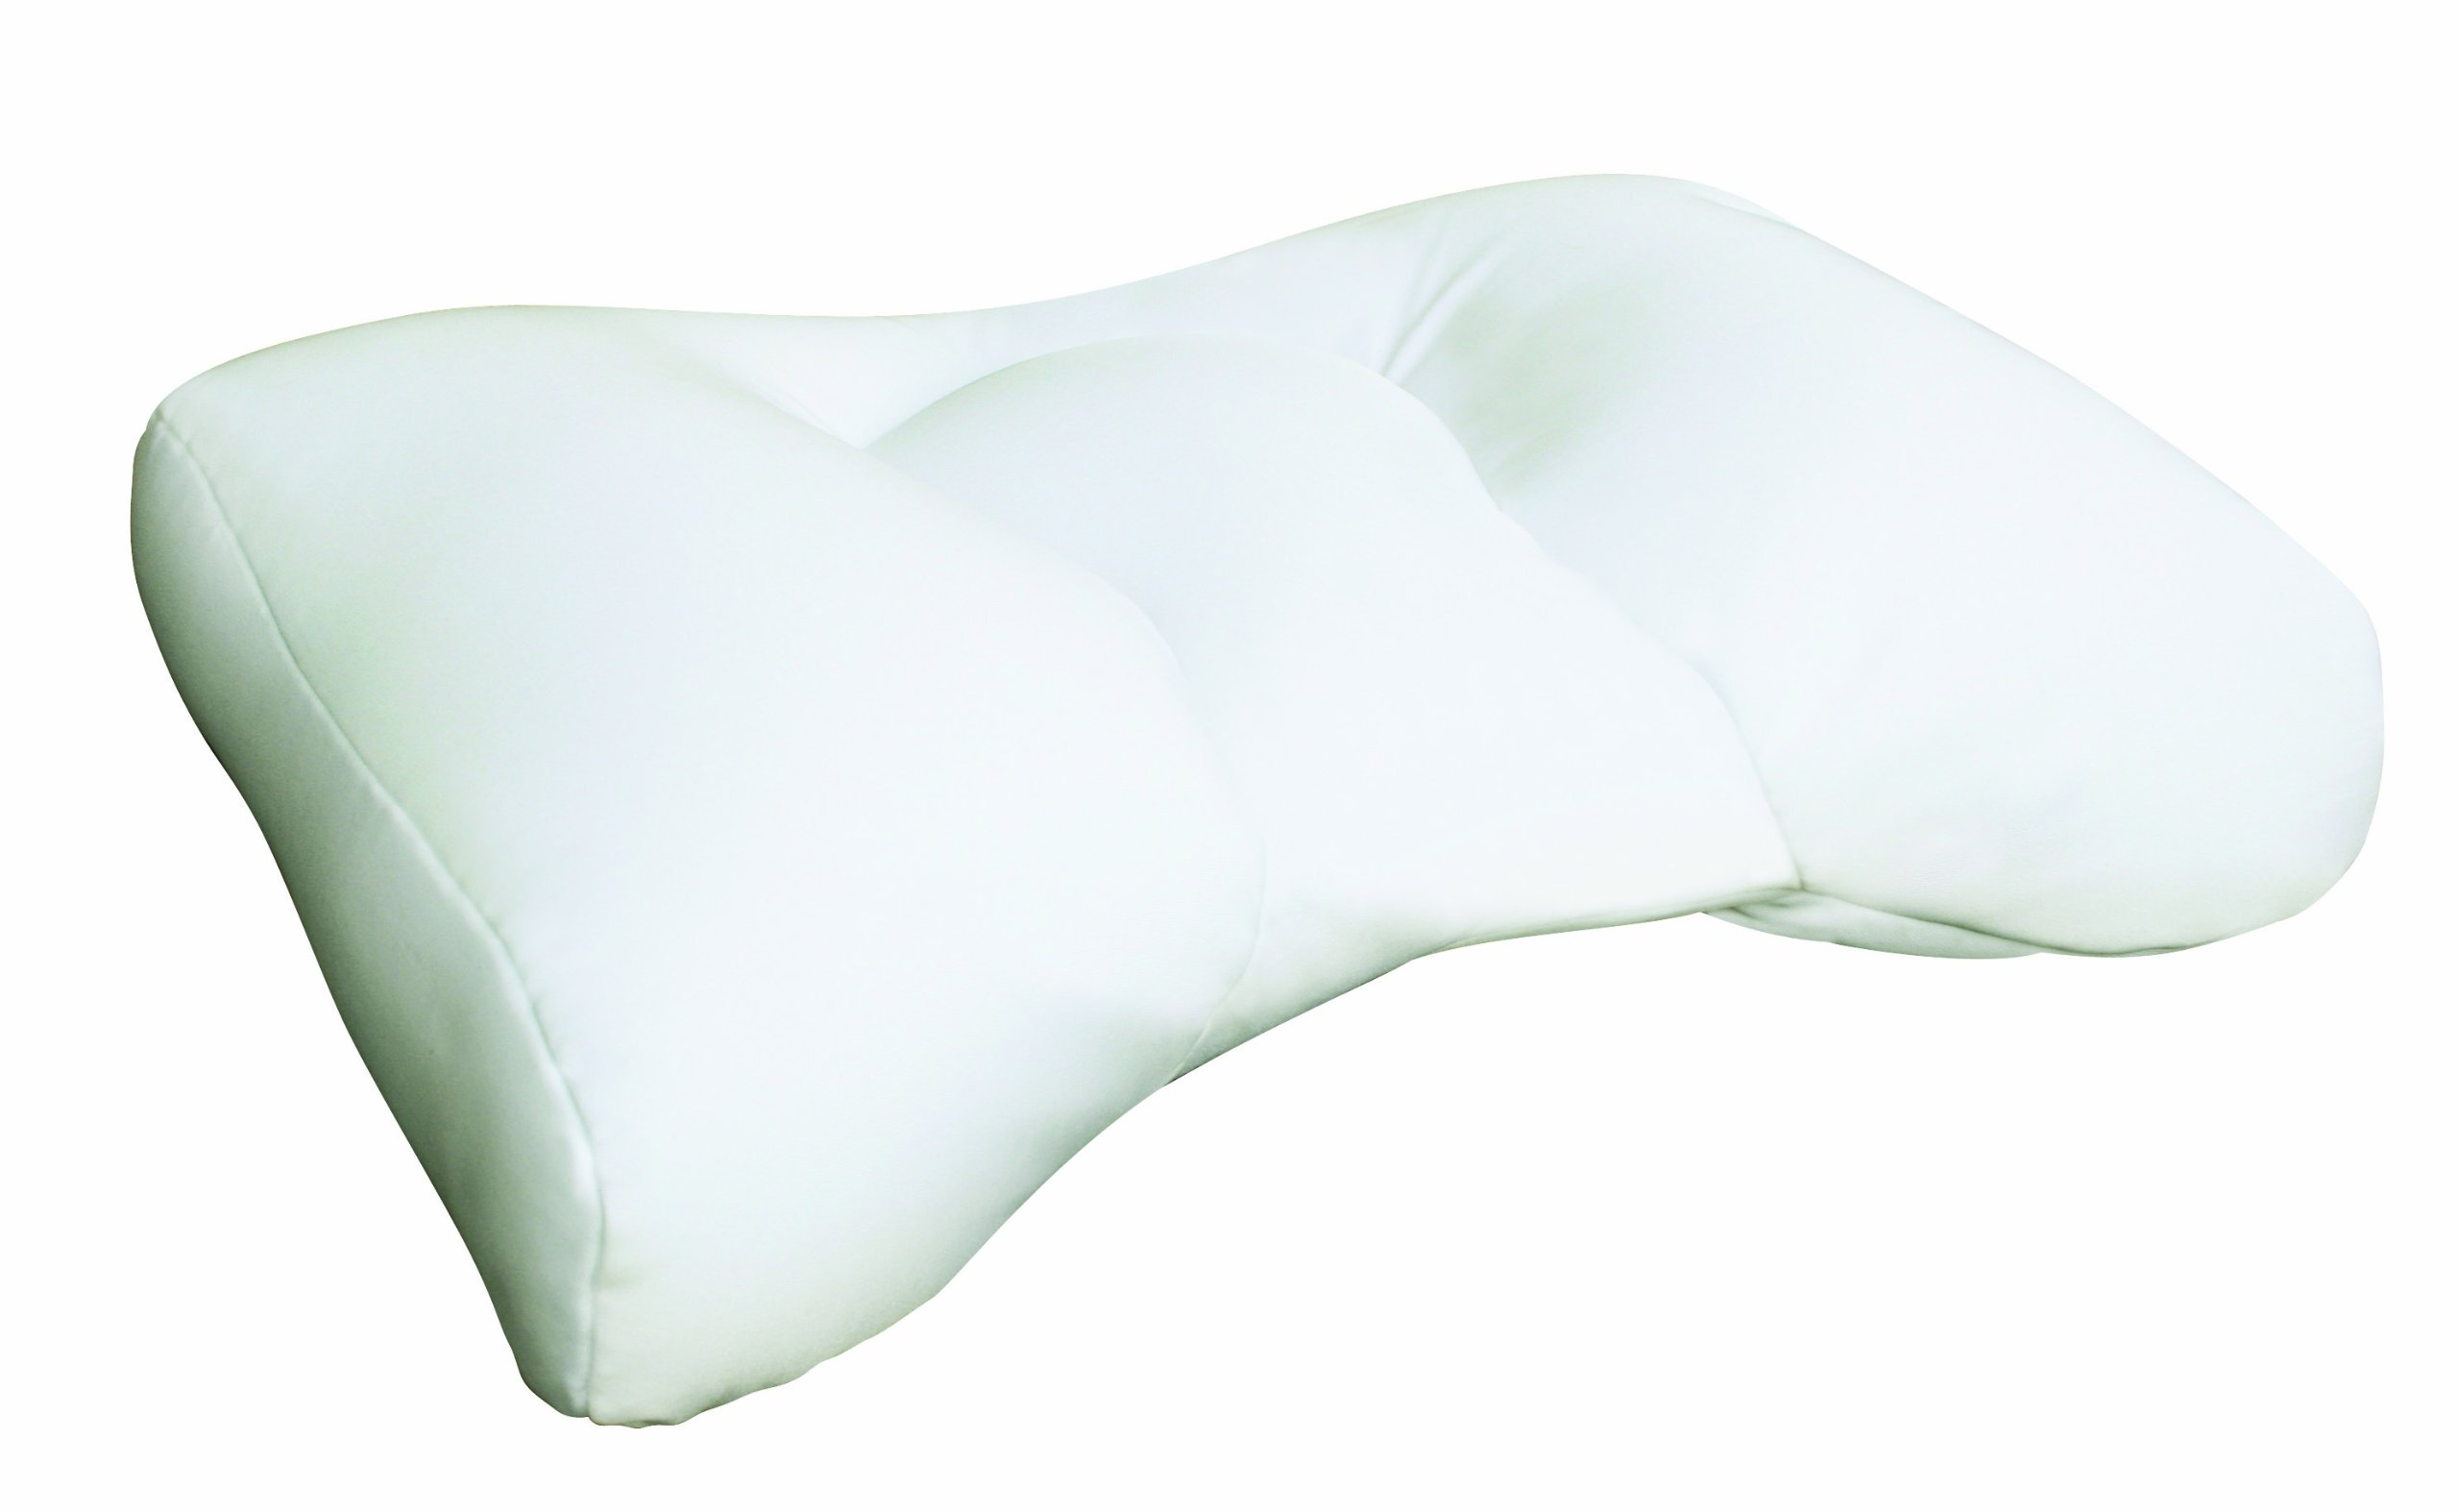 Sobakawa  Cloud Pillow 12.6'' x 18.5'' x 3.15'' by Sobakawa  Cloud Pillow